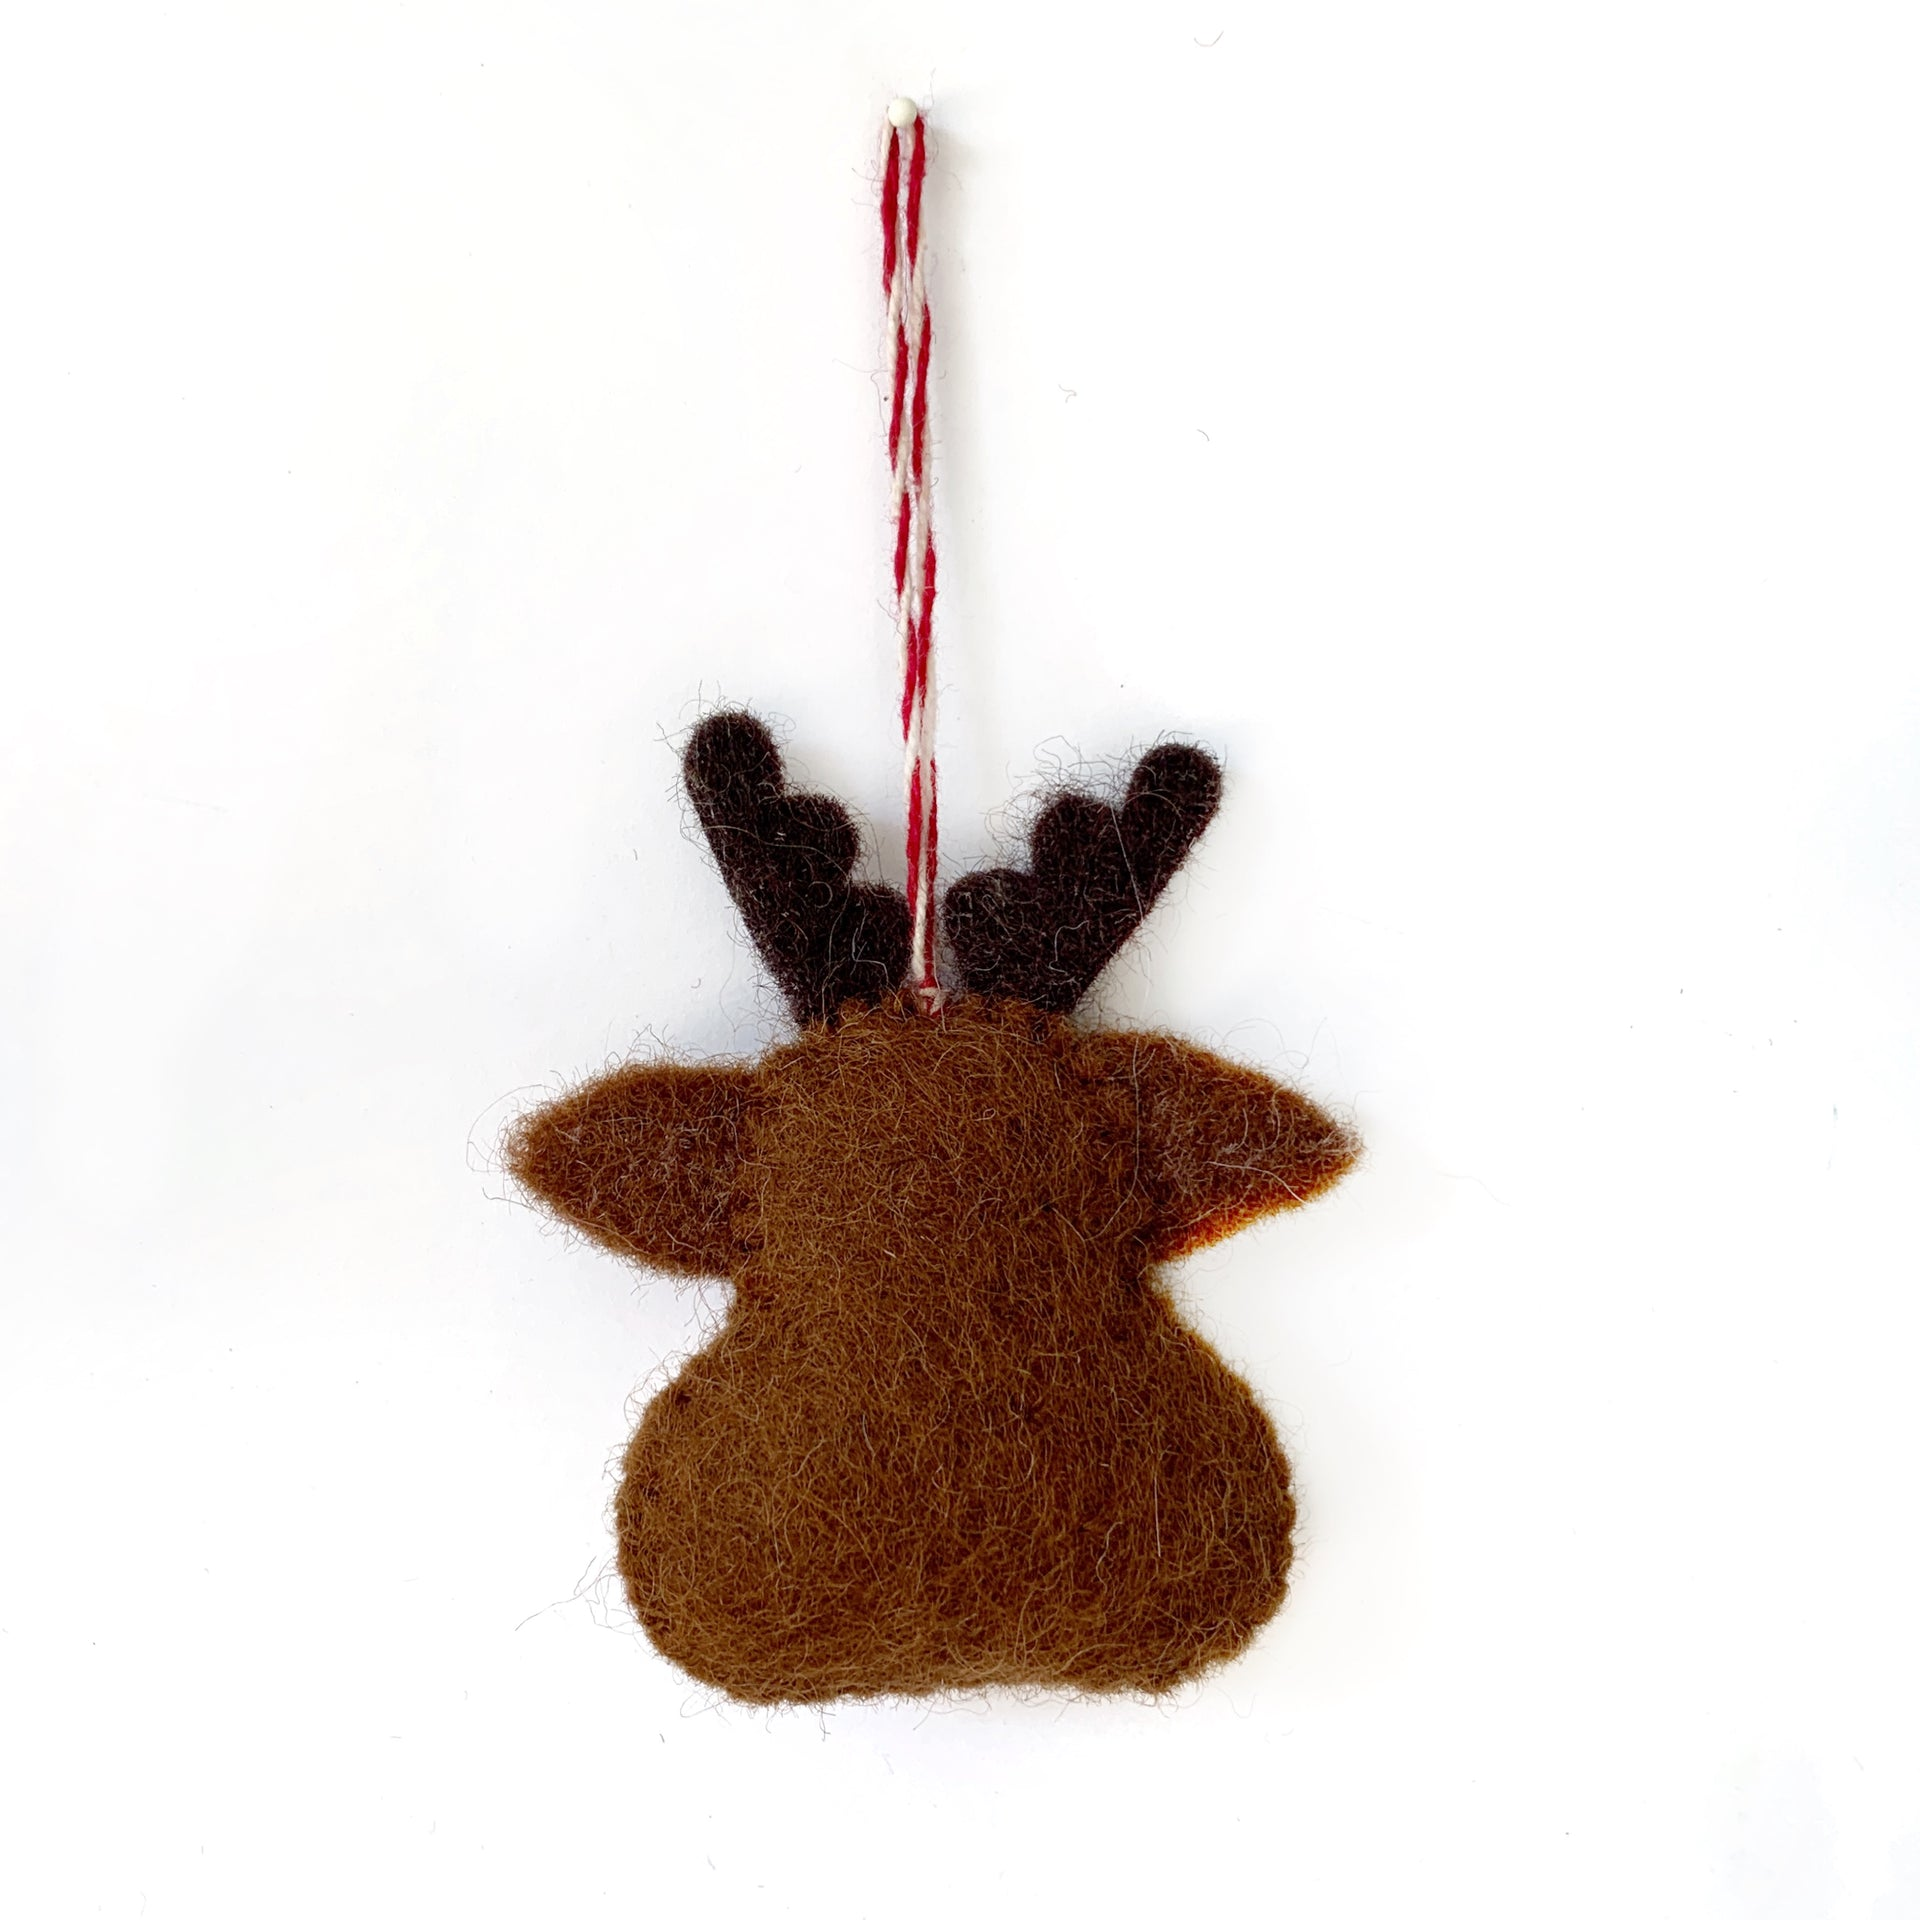 Red Nosed Reindeer Fair Trade Ornament from Nepal